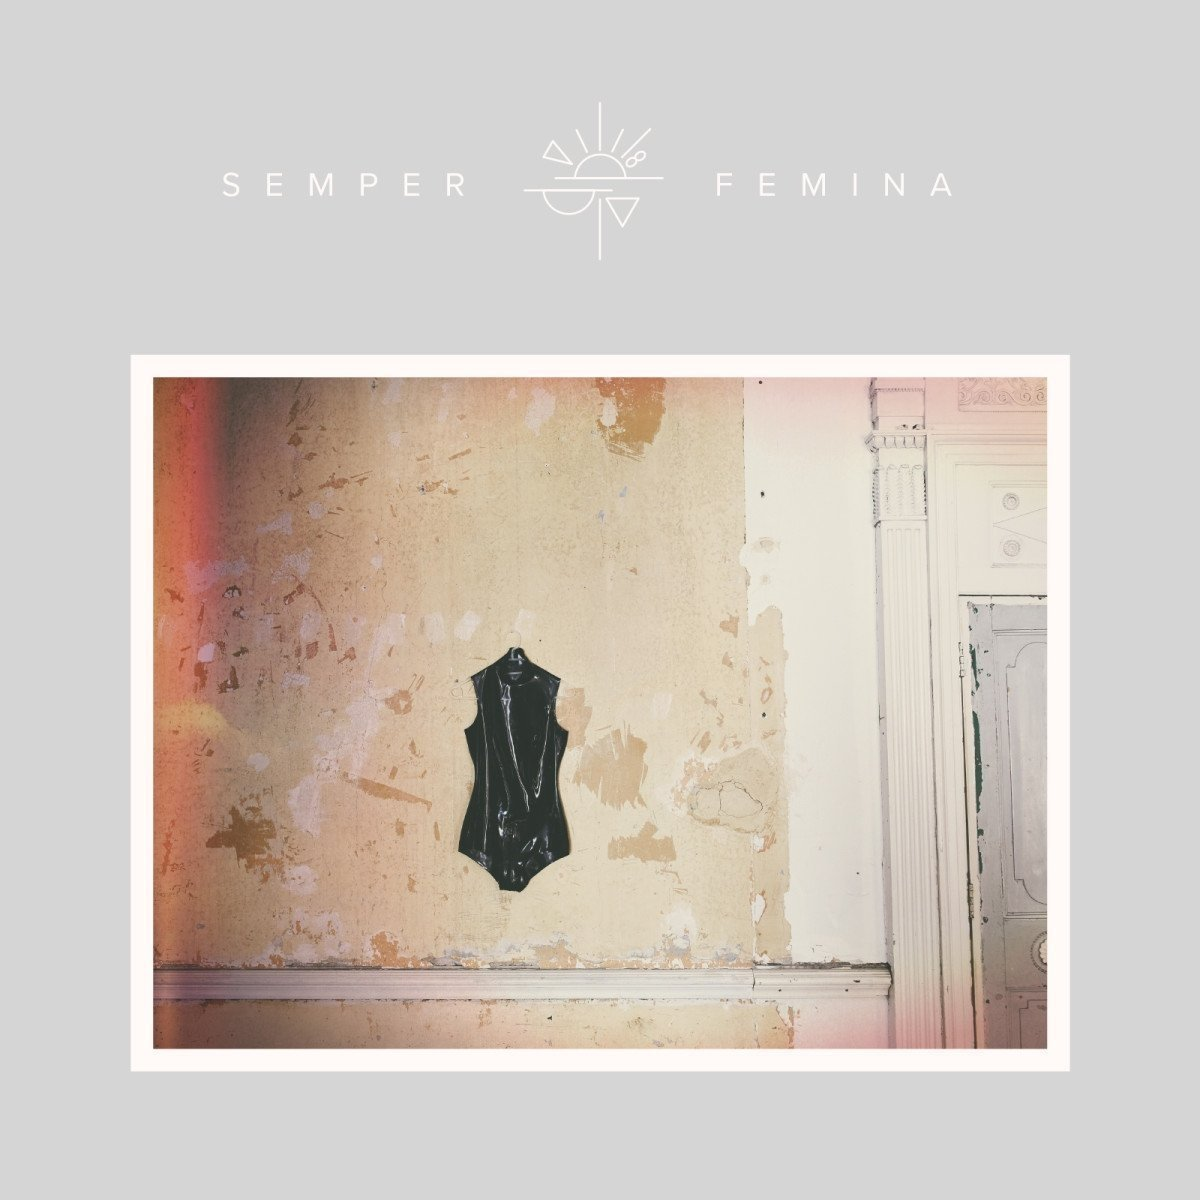 laura marling semper femina album stream Top 50 Albums of 2017